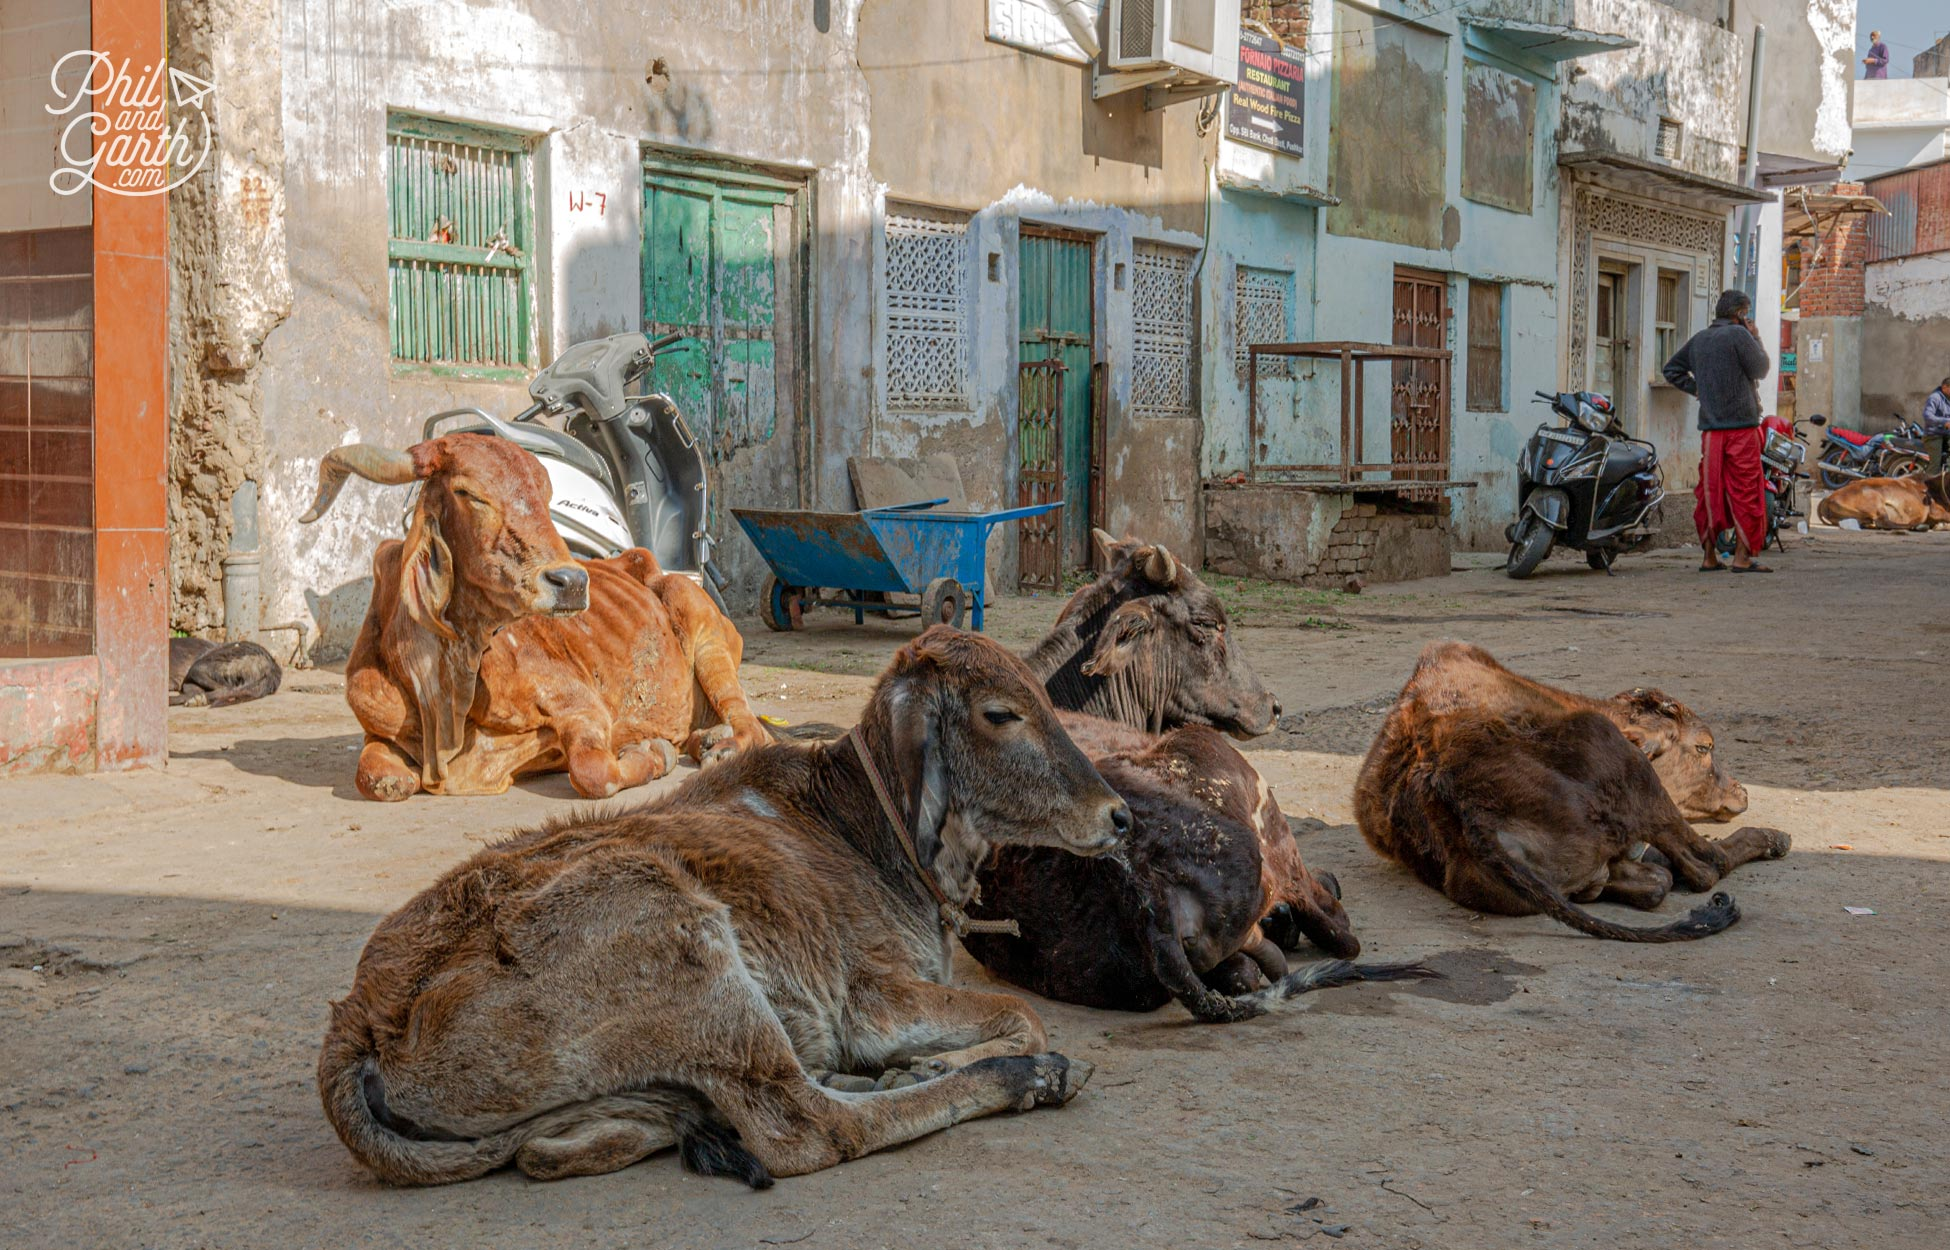 We found this group of holy cows resting in a back street